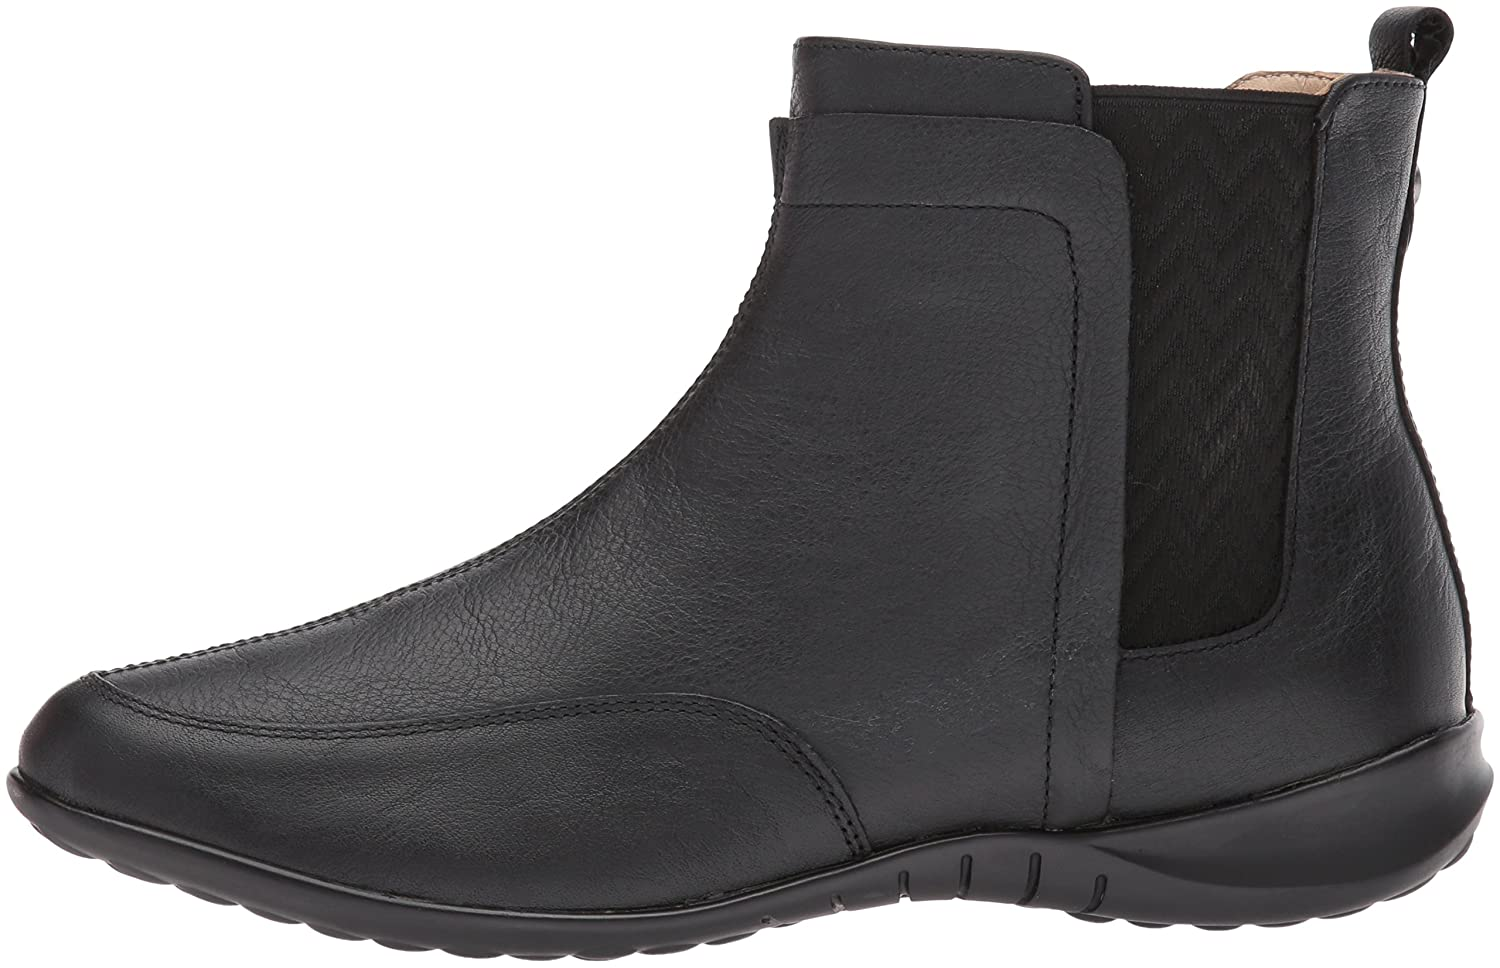 Hush Puppies Women's Lindsi Bria Chelsea Boot B01MRBLWTJ 9.5 W US|Black Wp